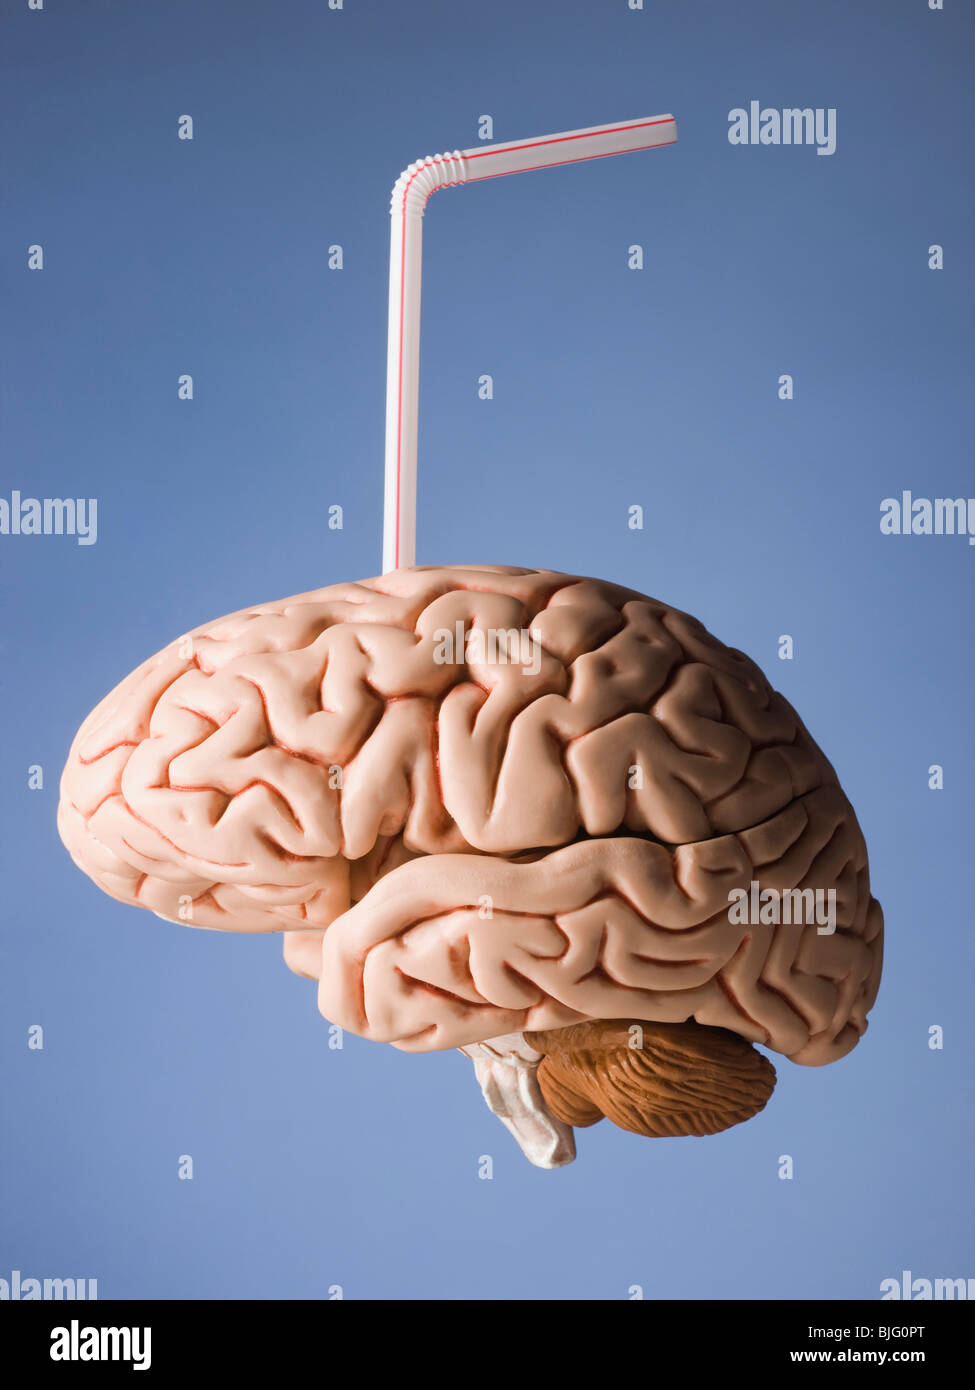 brain with a straw in it - Stock Image